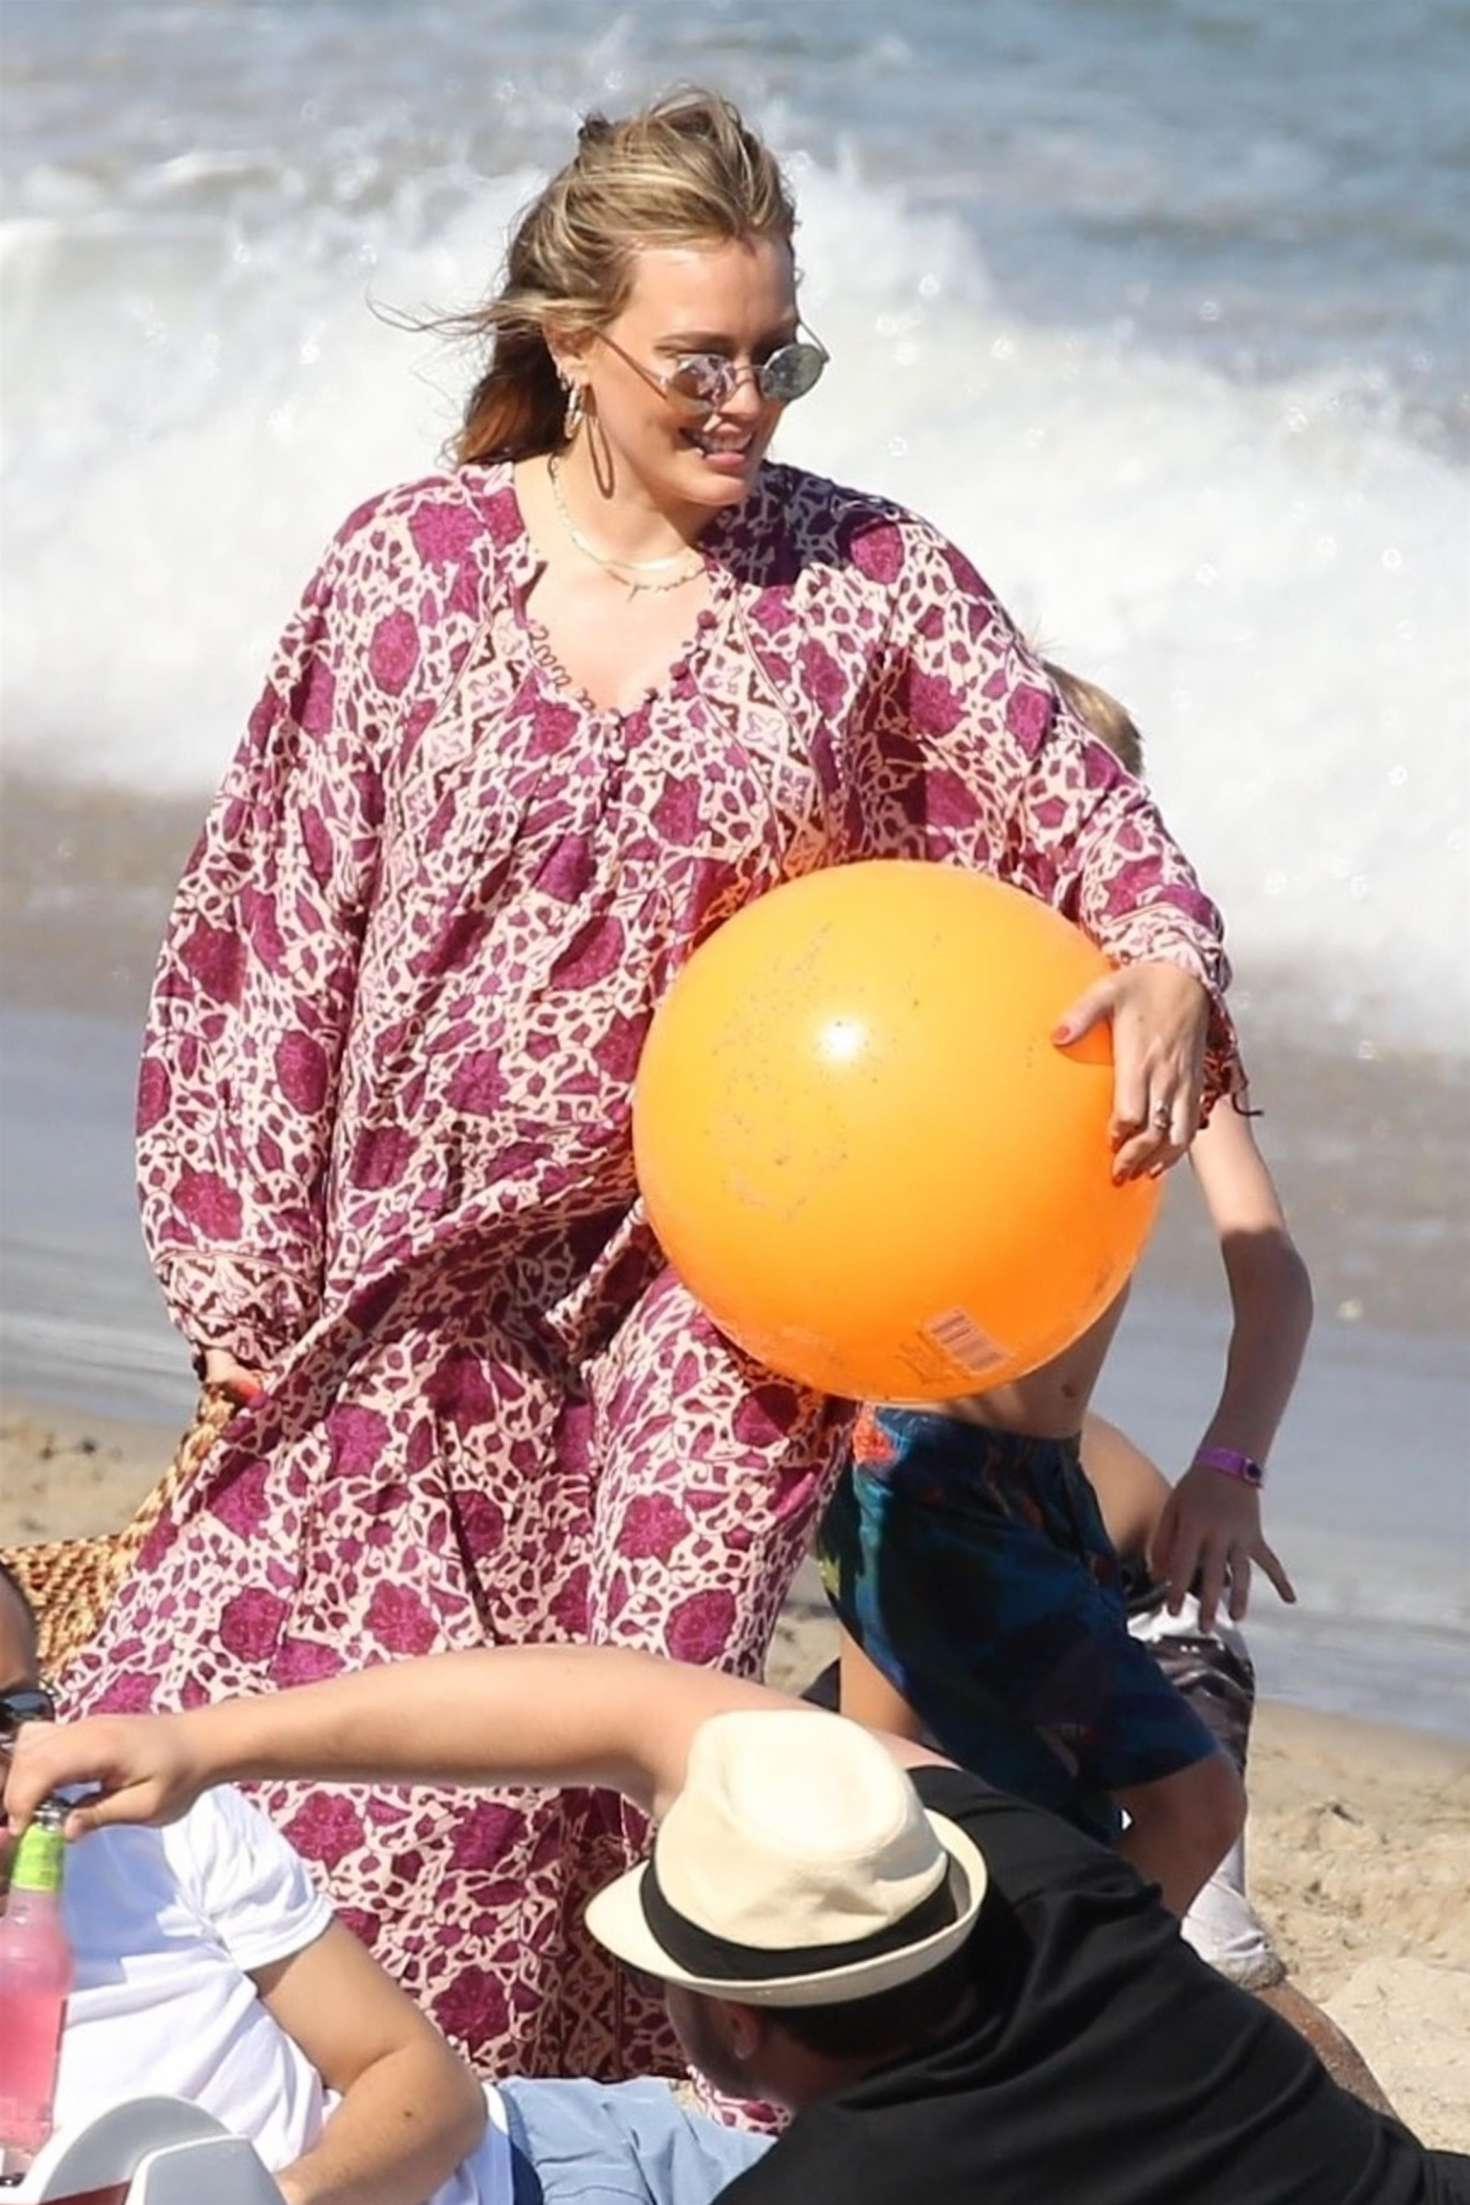 Hilary Duff - On the beach for the 4th of July in Malibu